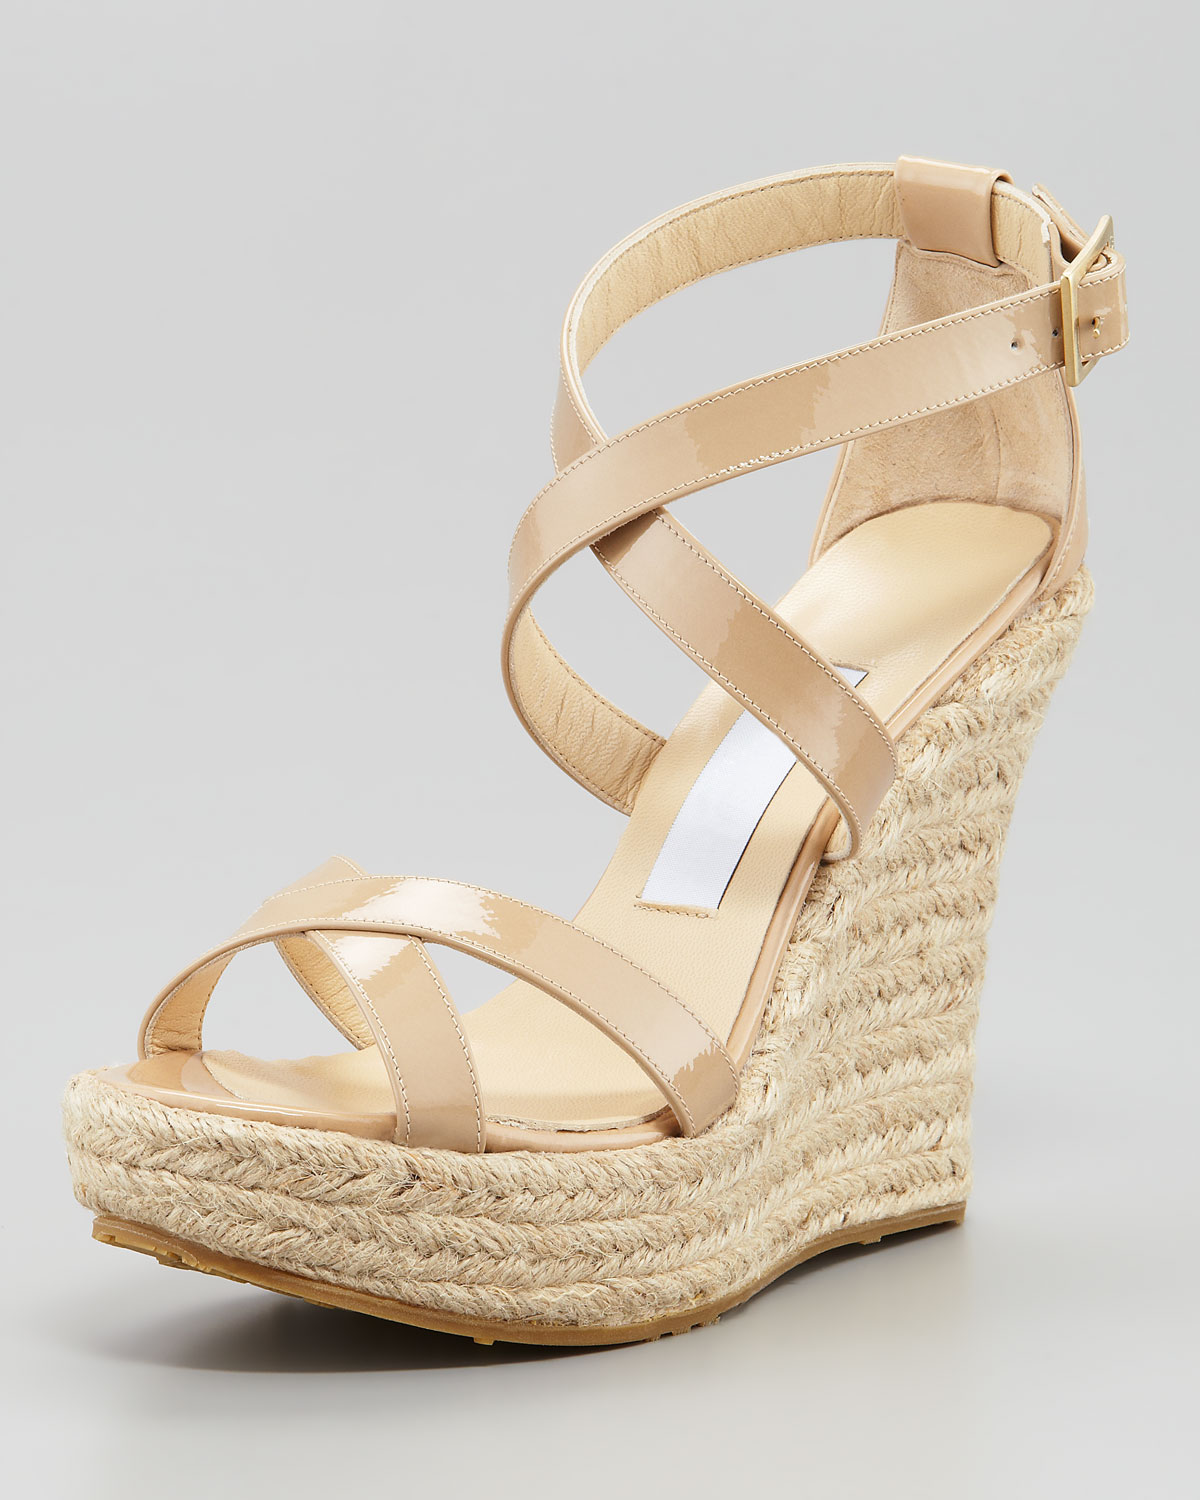 Jimmy Choo Crossover Espadrille Sandals cheap sale how much free shipping lowest price cheap many kinds of sale really outlet ebay 7fLblg989c